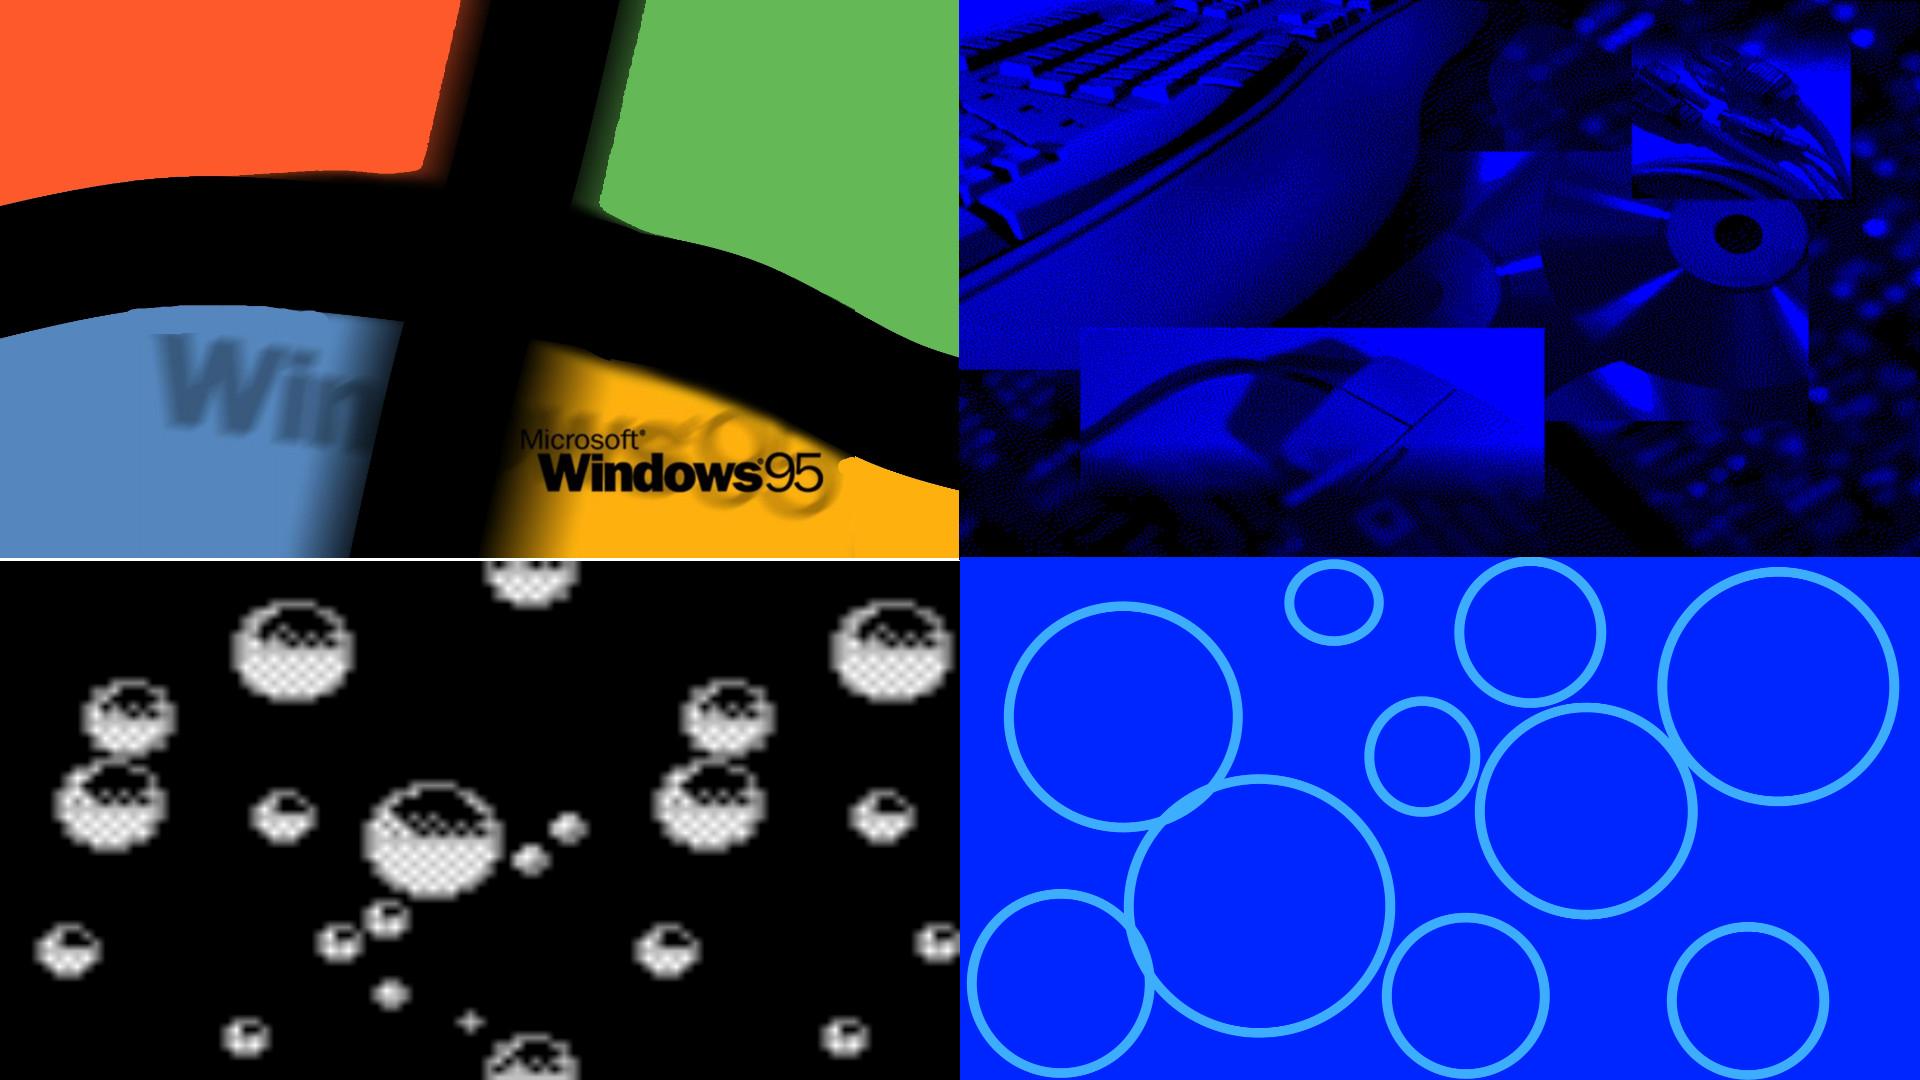 Res: 1920x1080, Windows 95 Wallpaper Pack by krichouxtech Windows 95 Wallpaper Pack by  krichouxtech